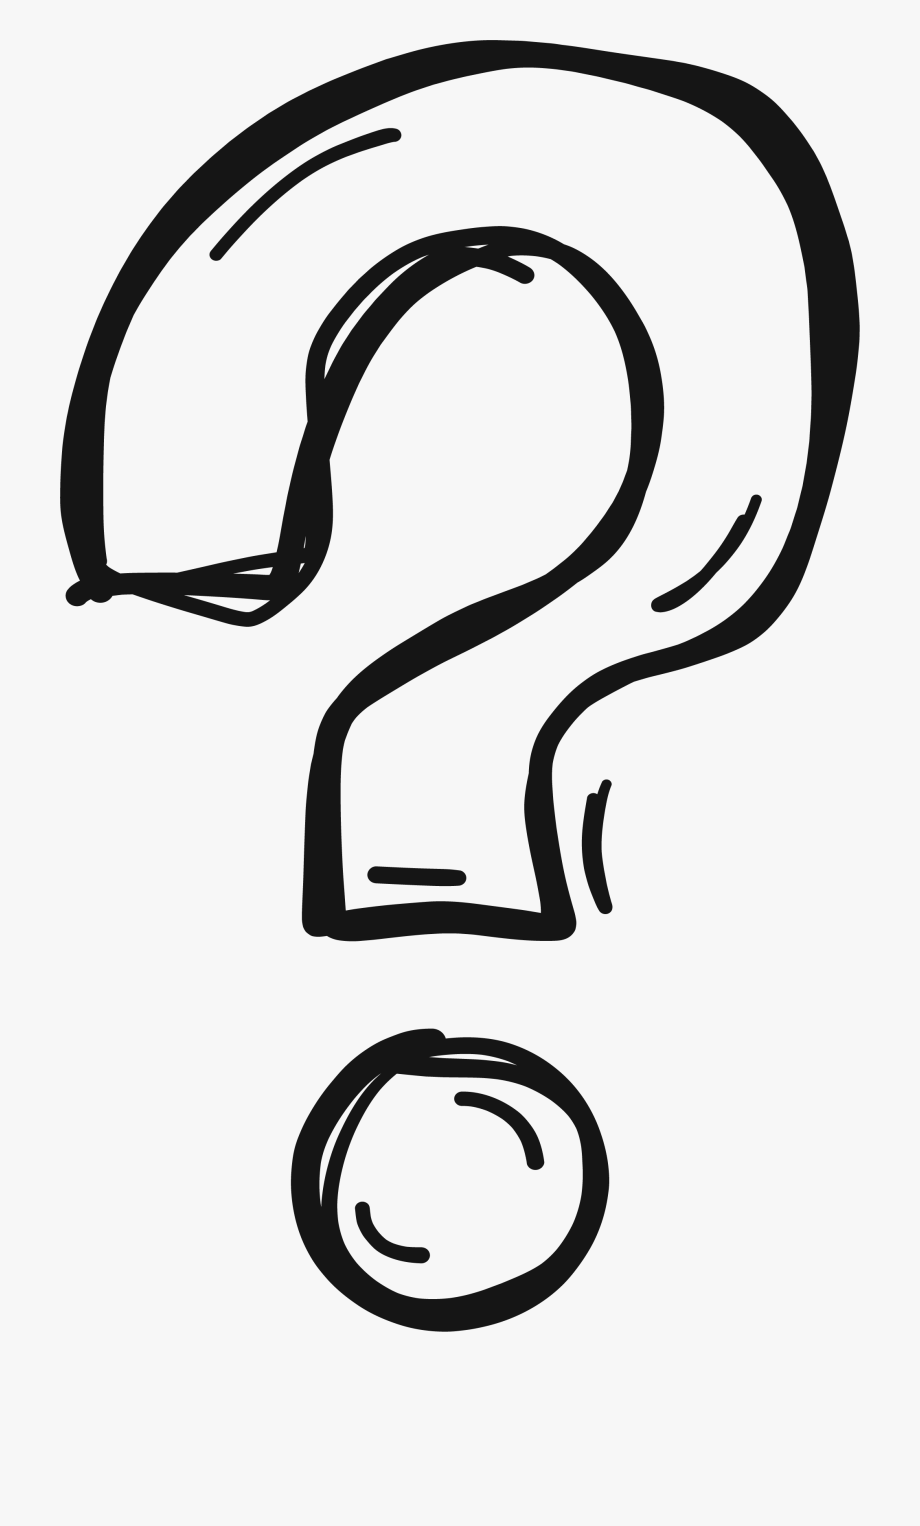 Black And White Question Mark Clipart.